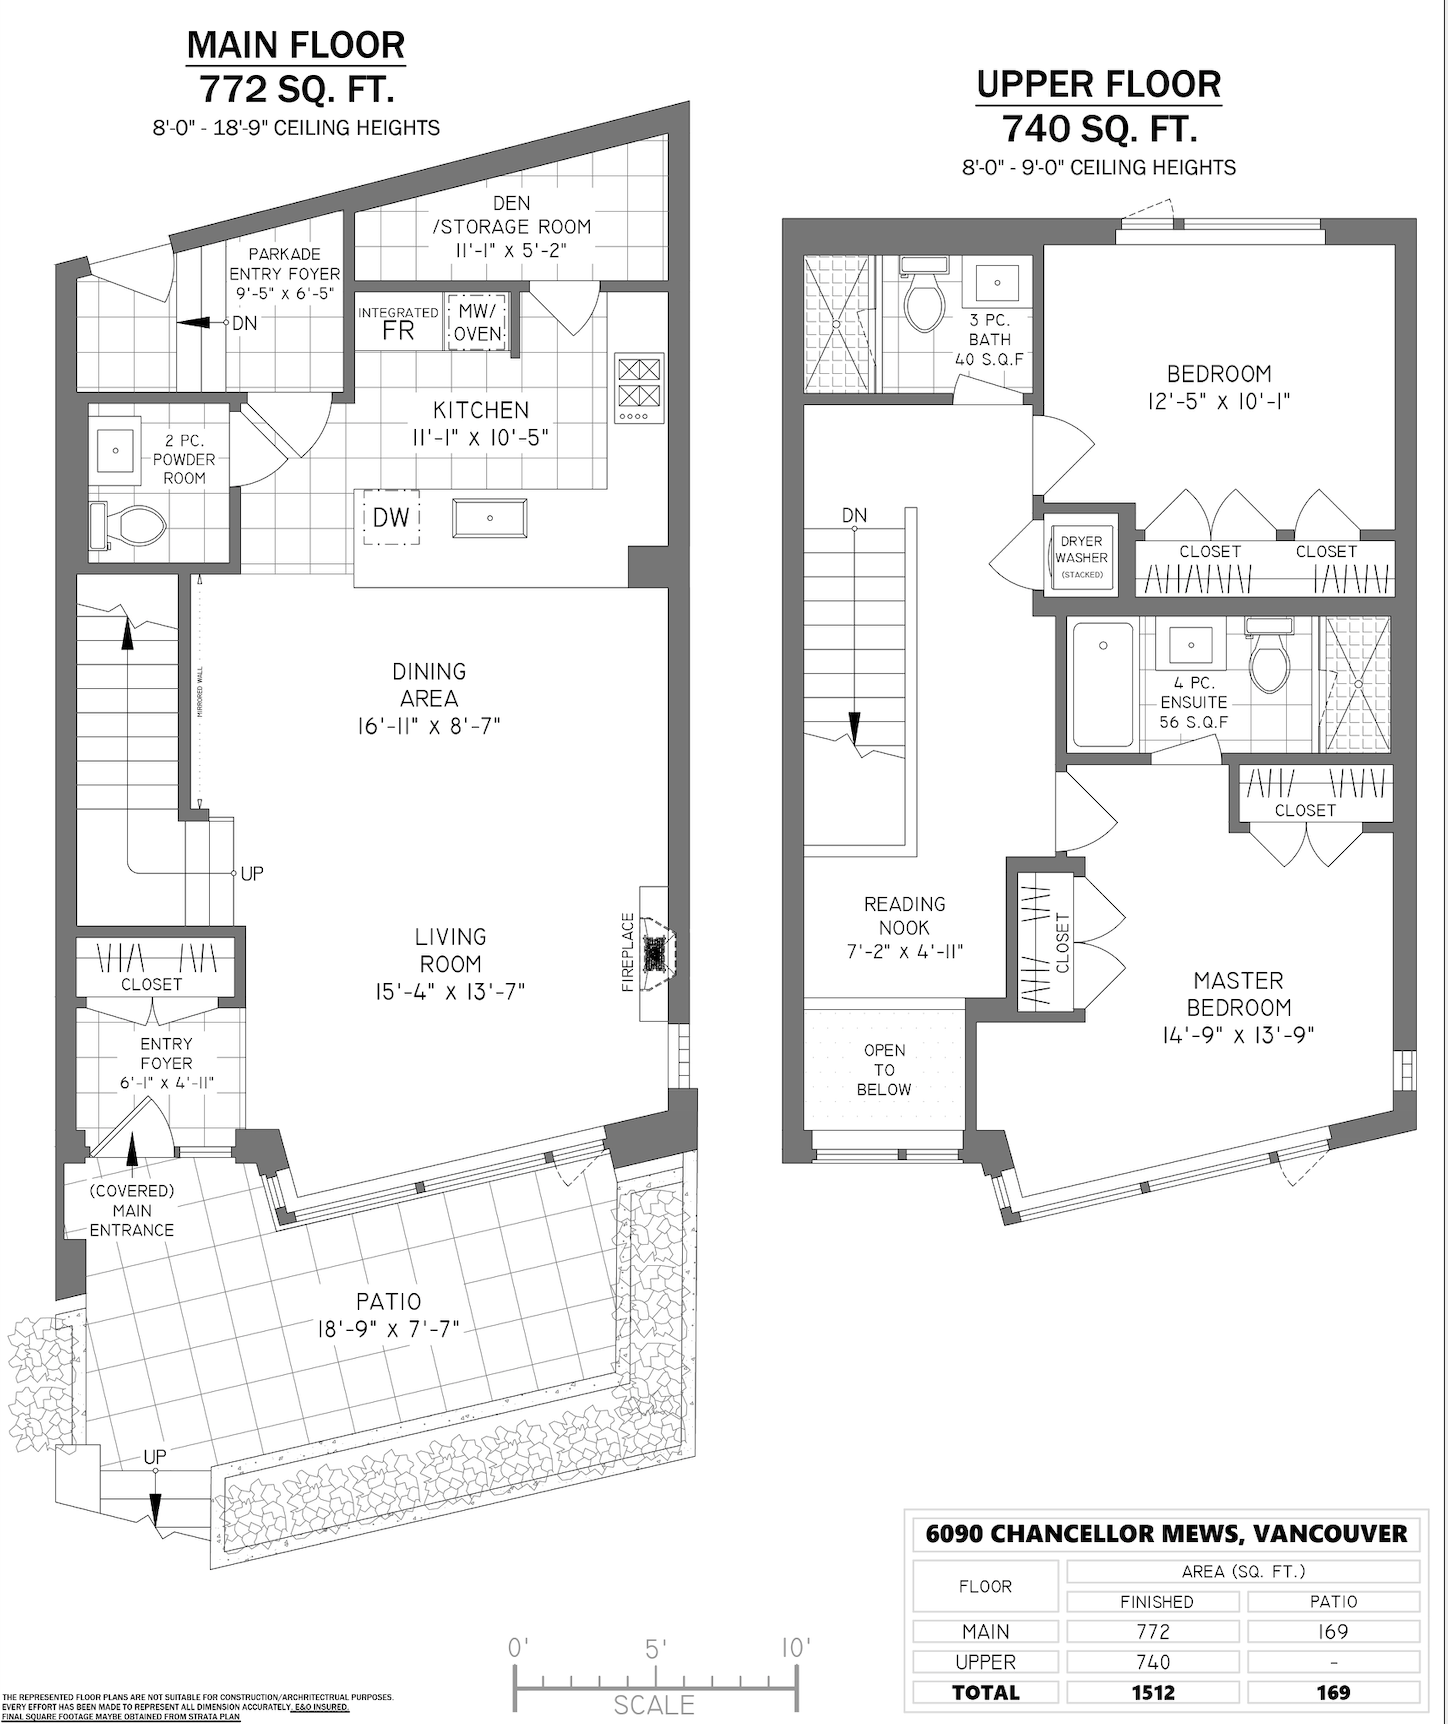 6090 Chancellor Mews - Floor Plan